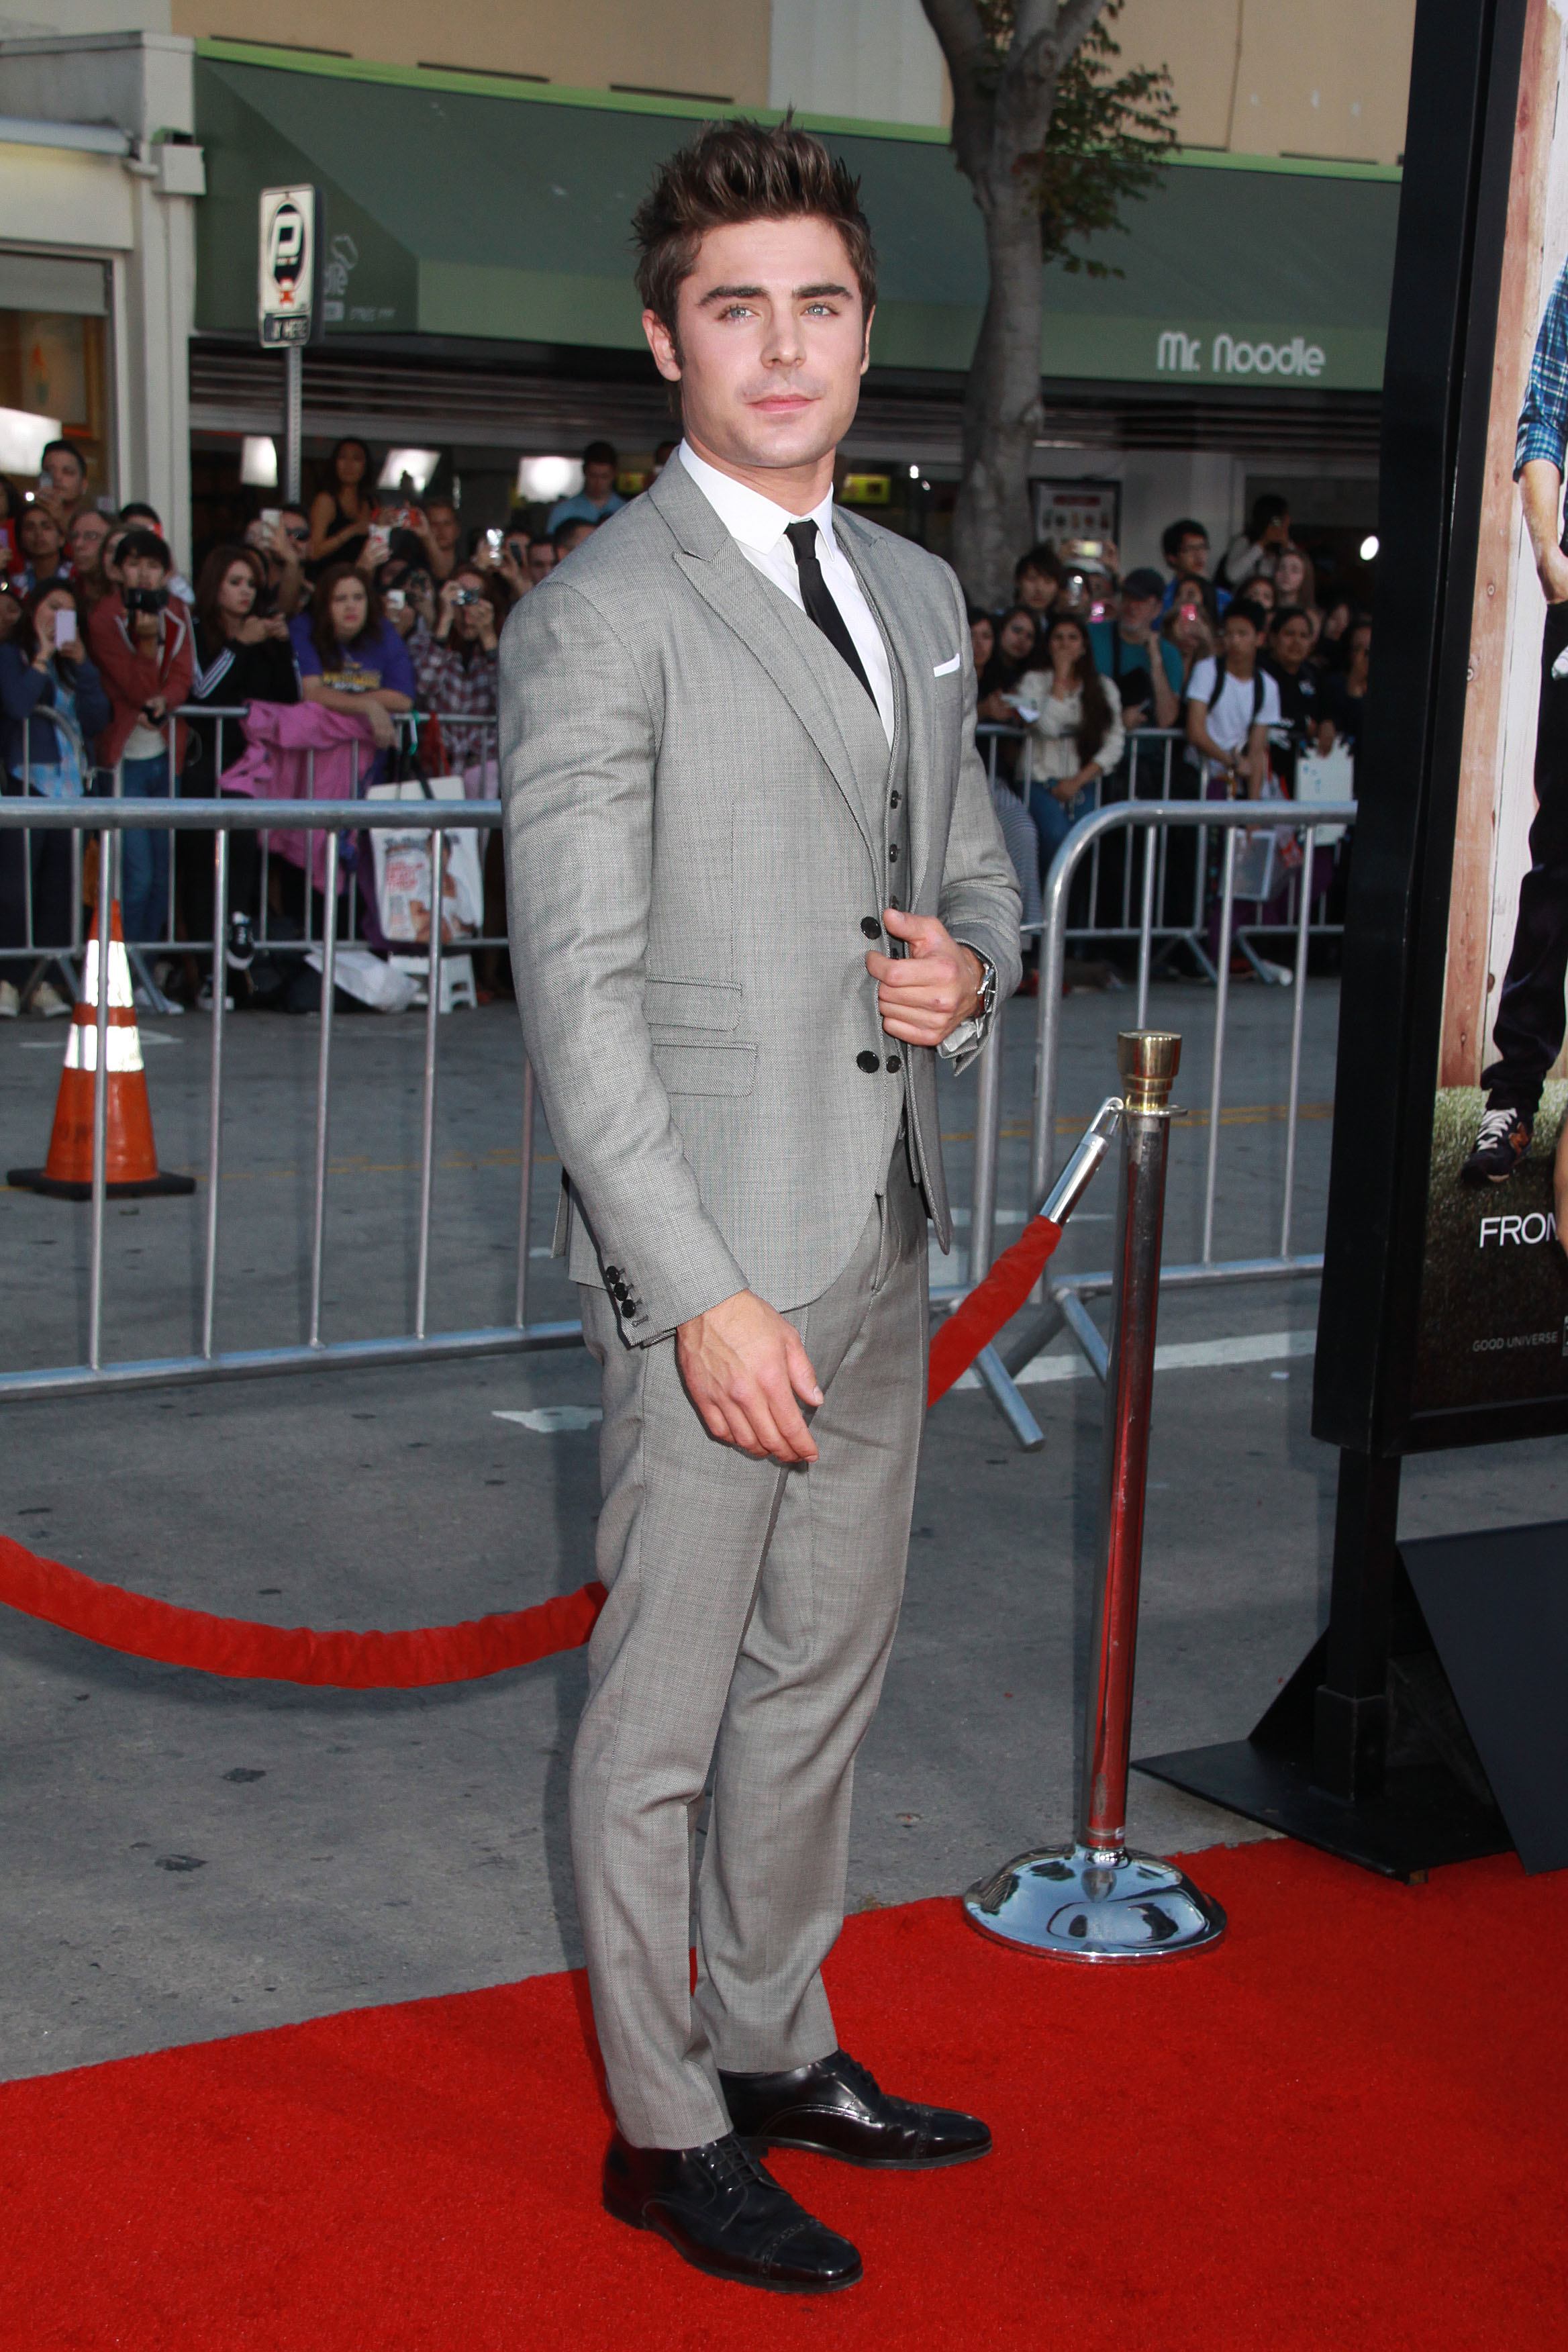 Zac Efron Arrives Draws Crowds At Premier Of Neighbors